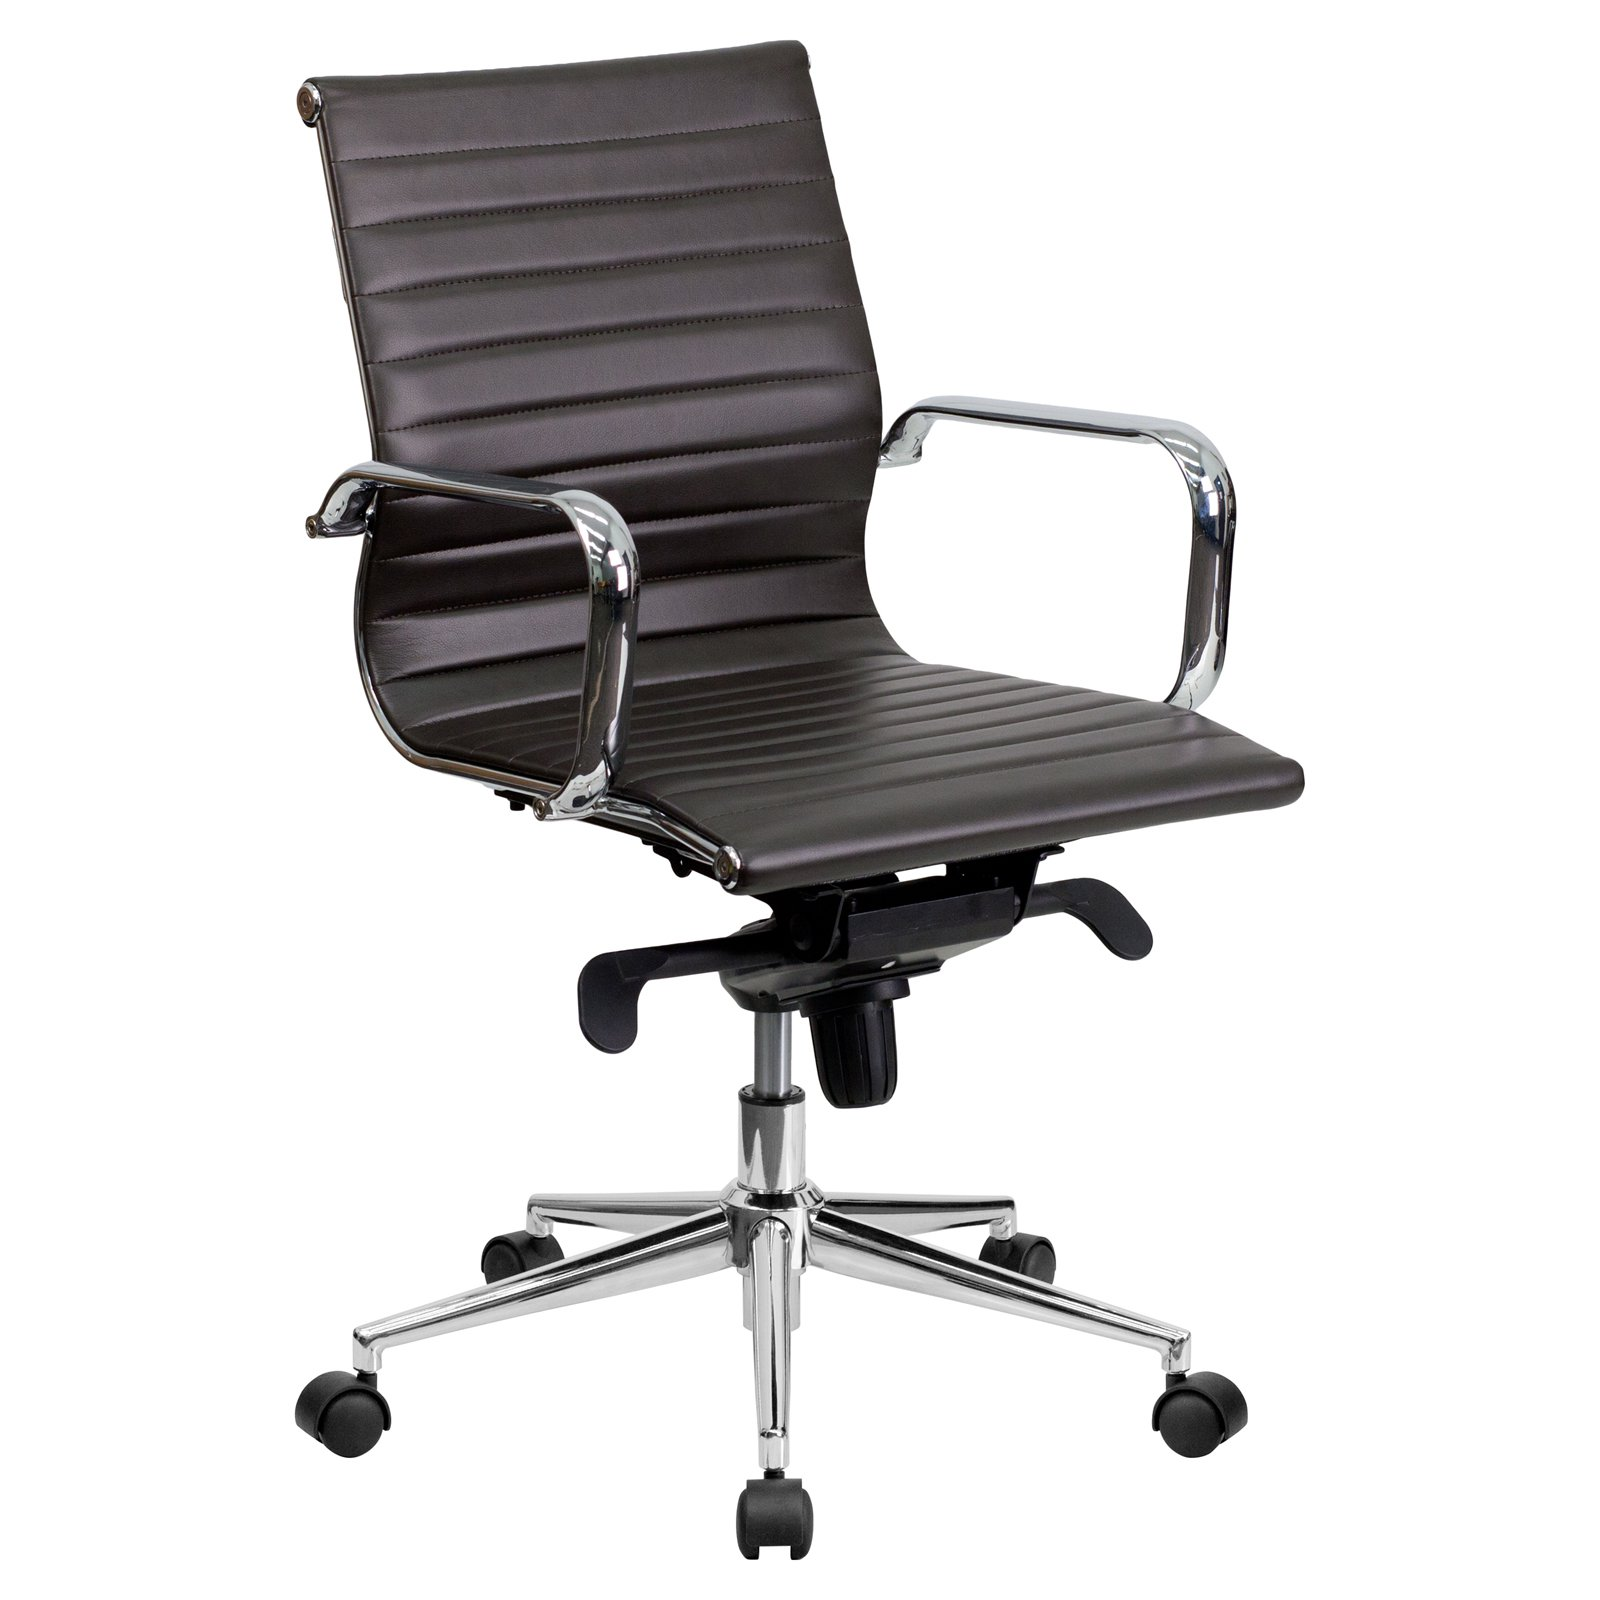 MidBack Ribbed Upholstered Leather Conference Chair